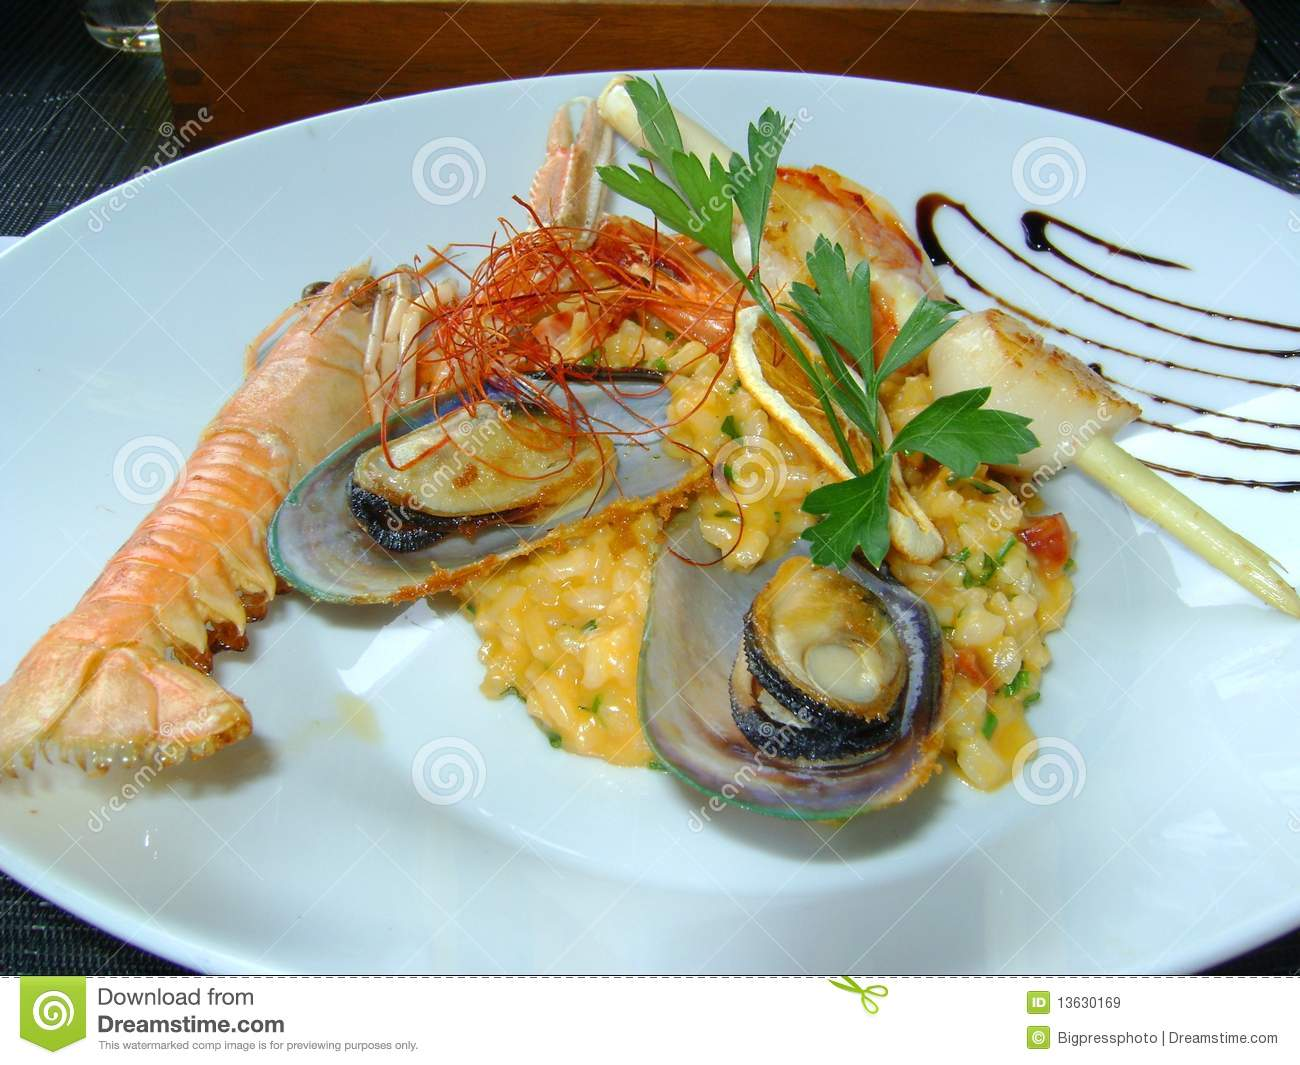 ... in the shell octopus and langostine served with saffron rice in